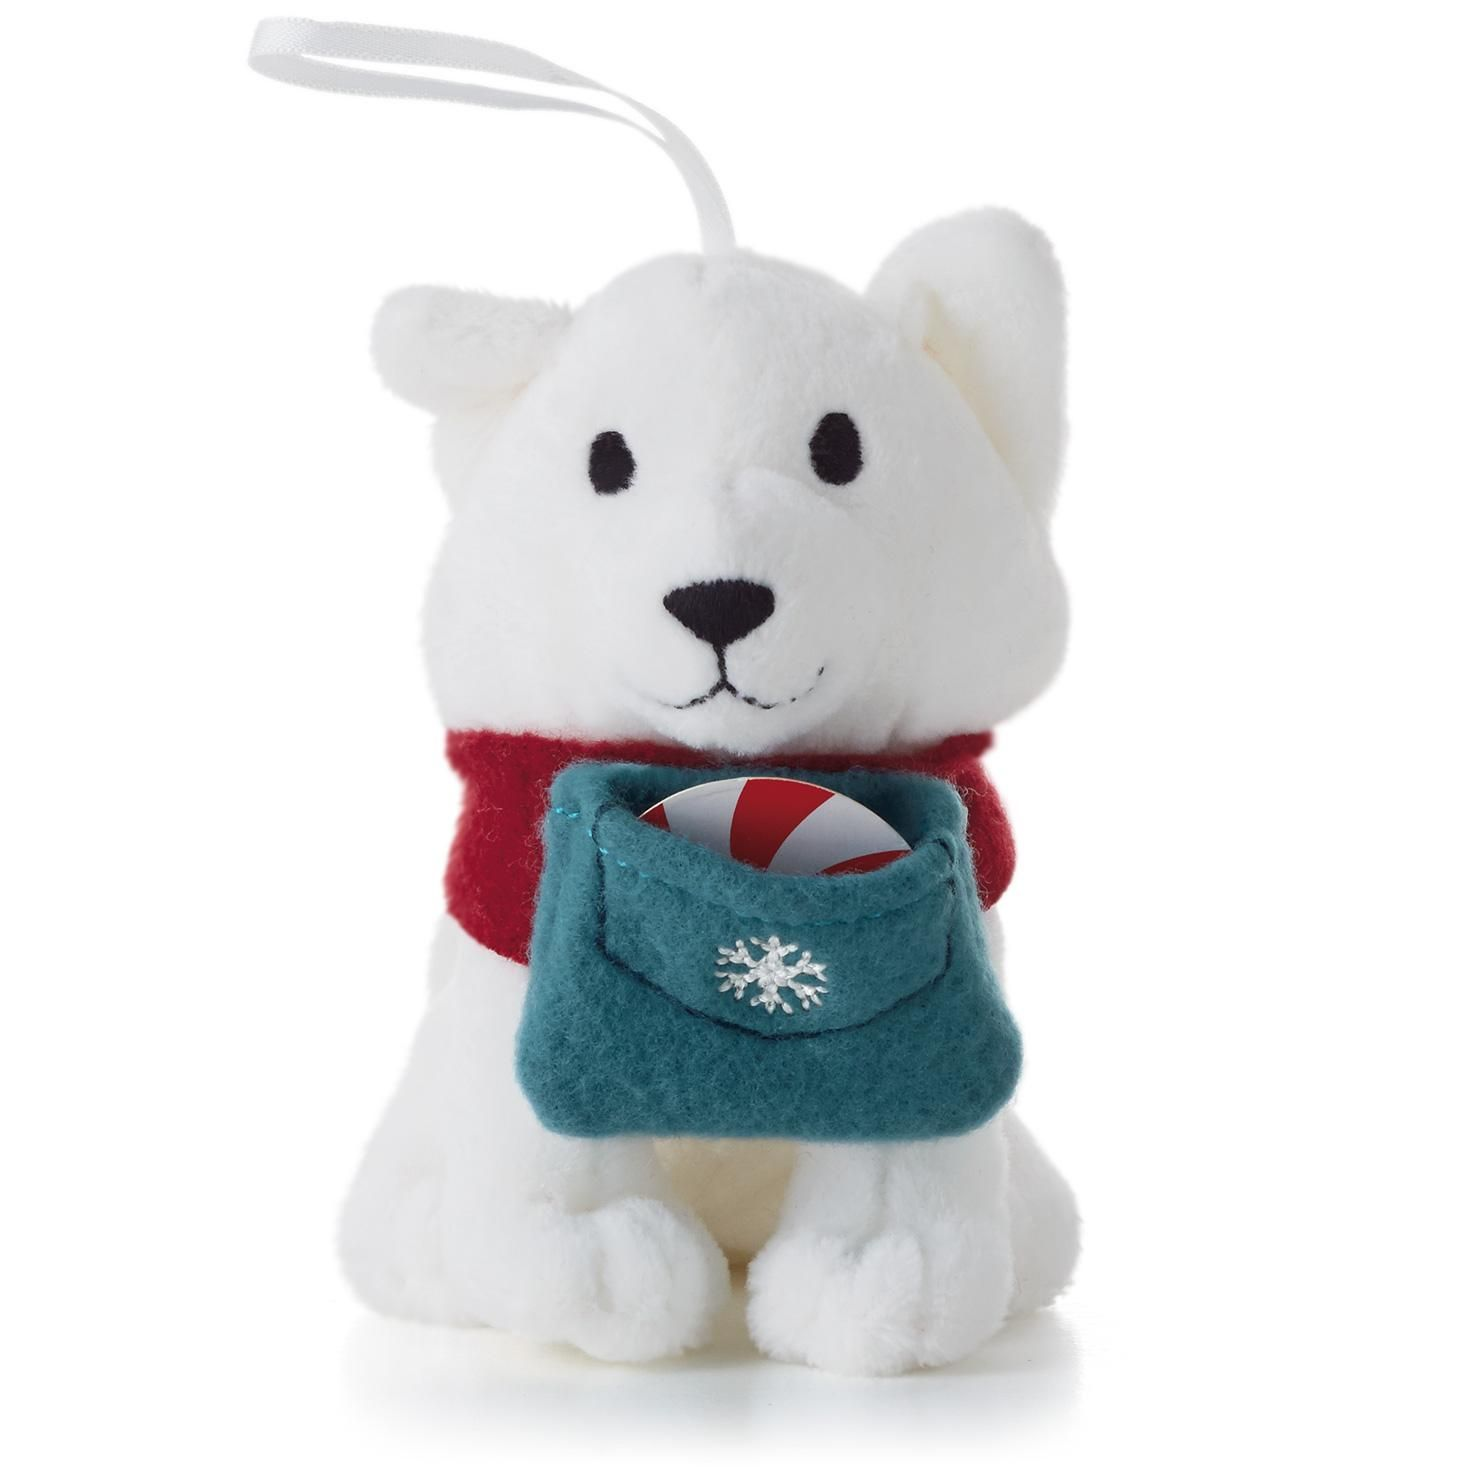 Flitter the Arctic Fox Ornament and Peppermint Holder